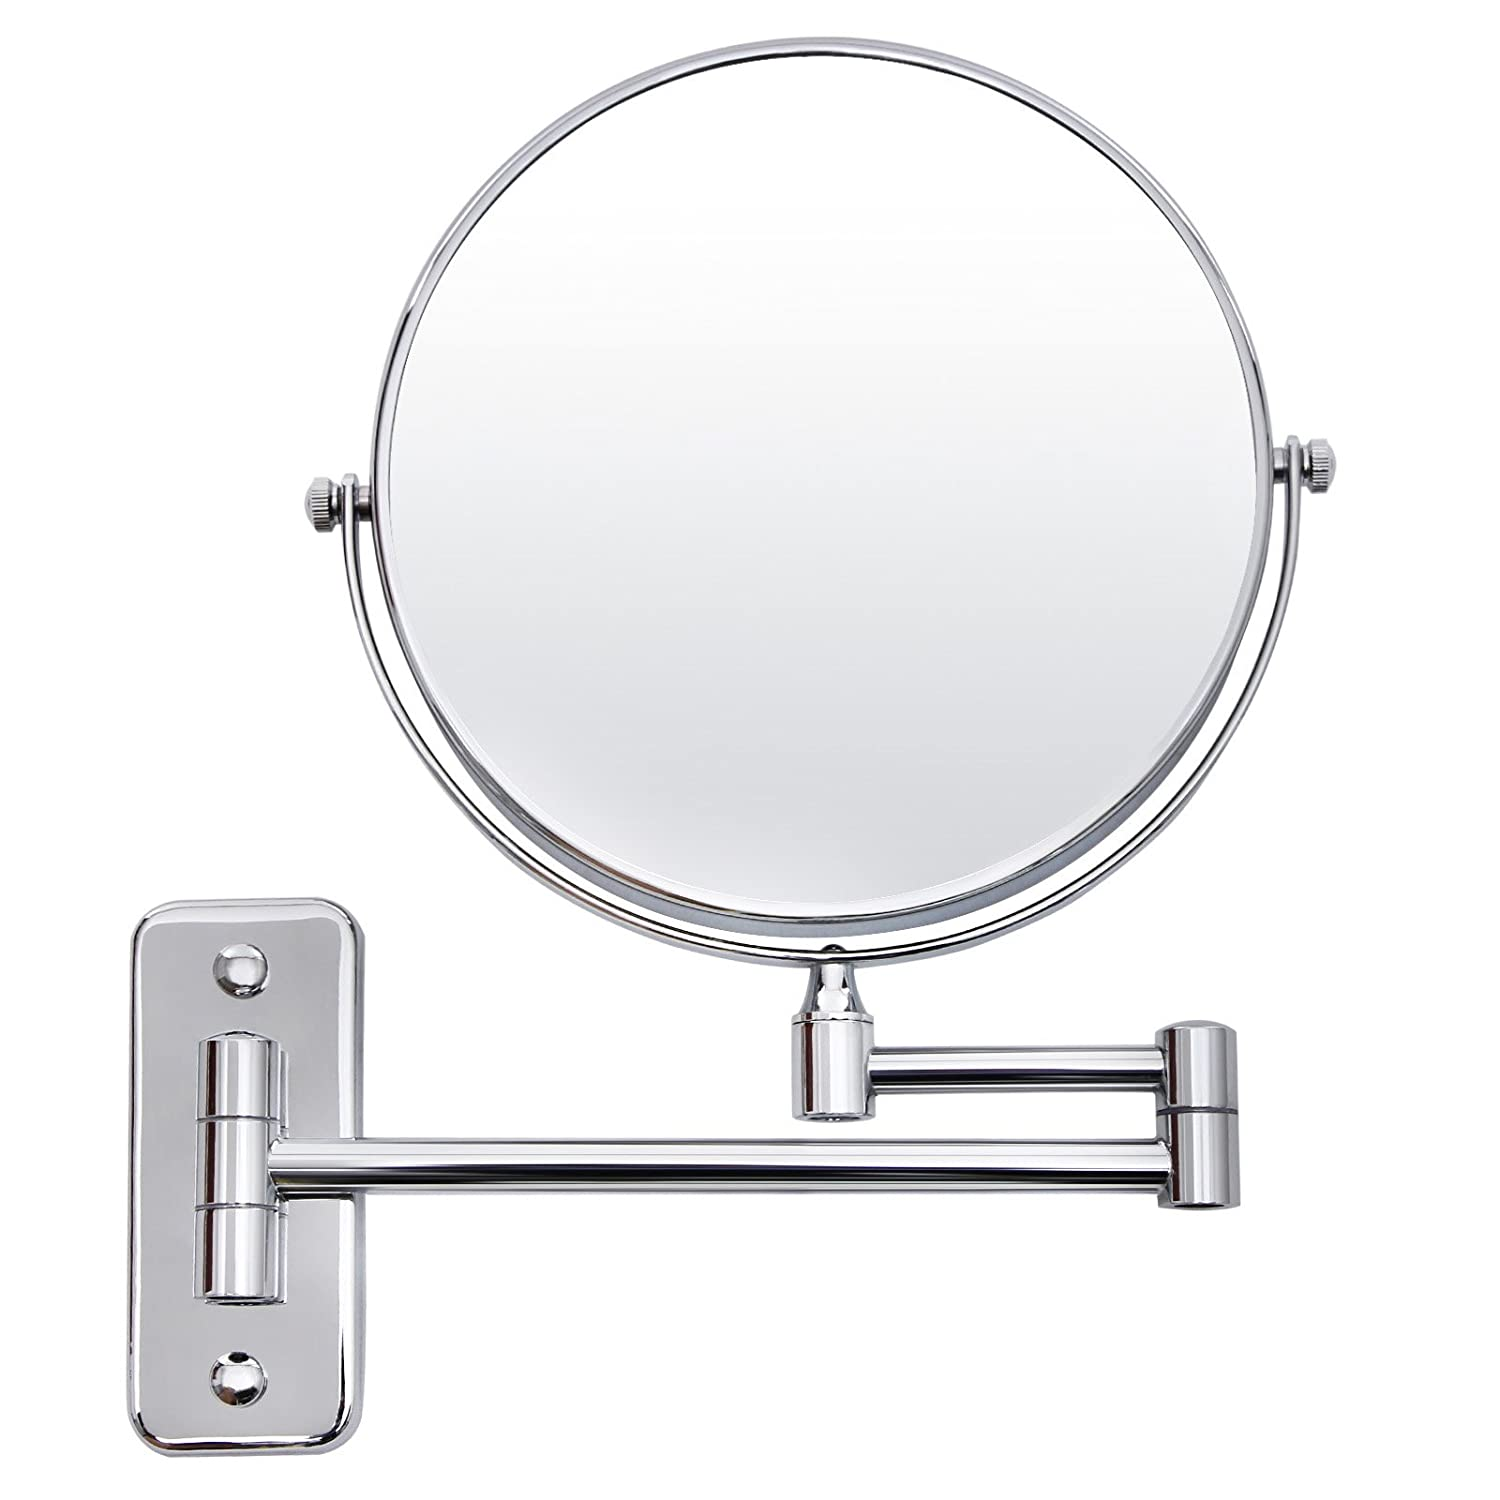 SONGMICS 5x Magnifying Wall Mount Makeup Mirror 8 Inch Two-Sided Swivel Extendable Bathroom Mirror Chrome UBBM513